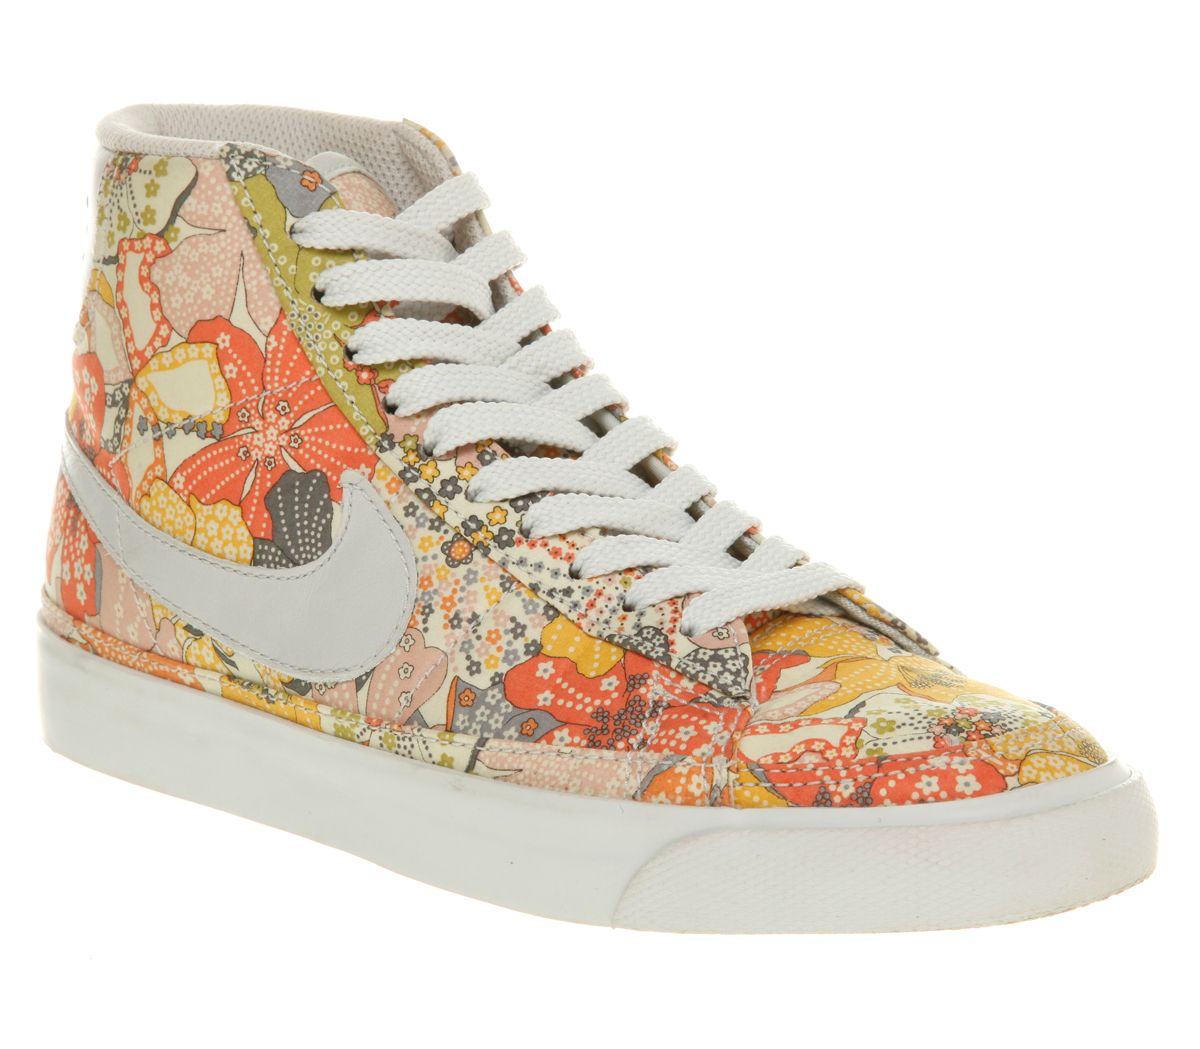 006b4b135f5a THE cutest pair of sneakers I ve seen~ I want  em!